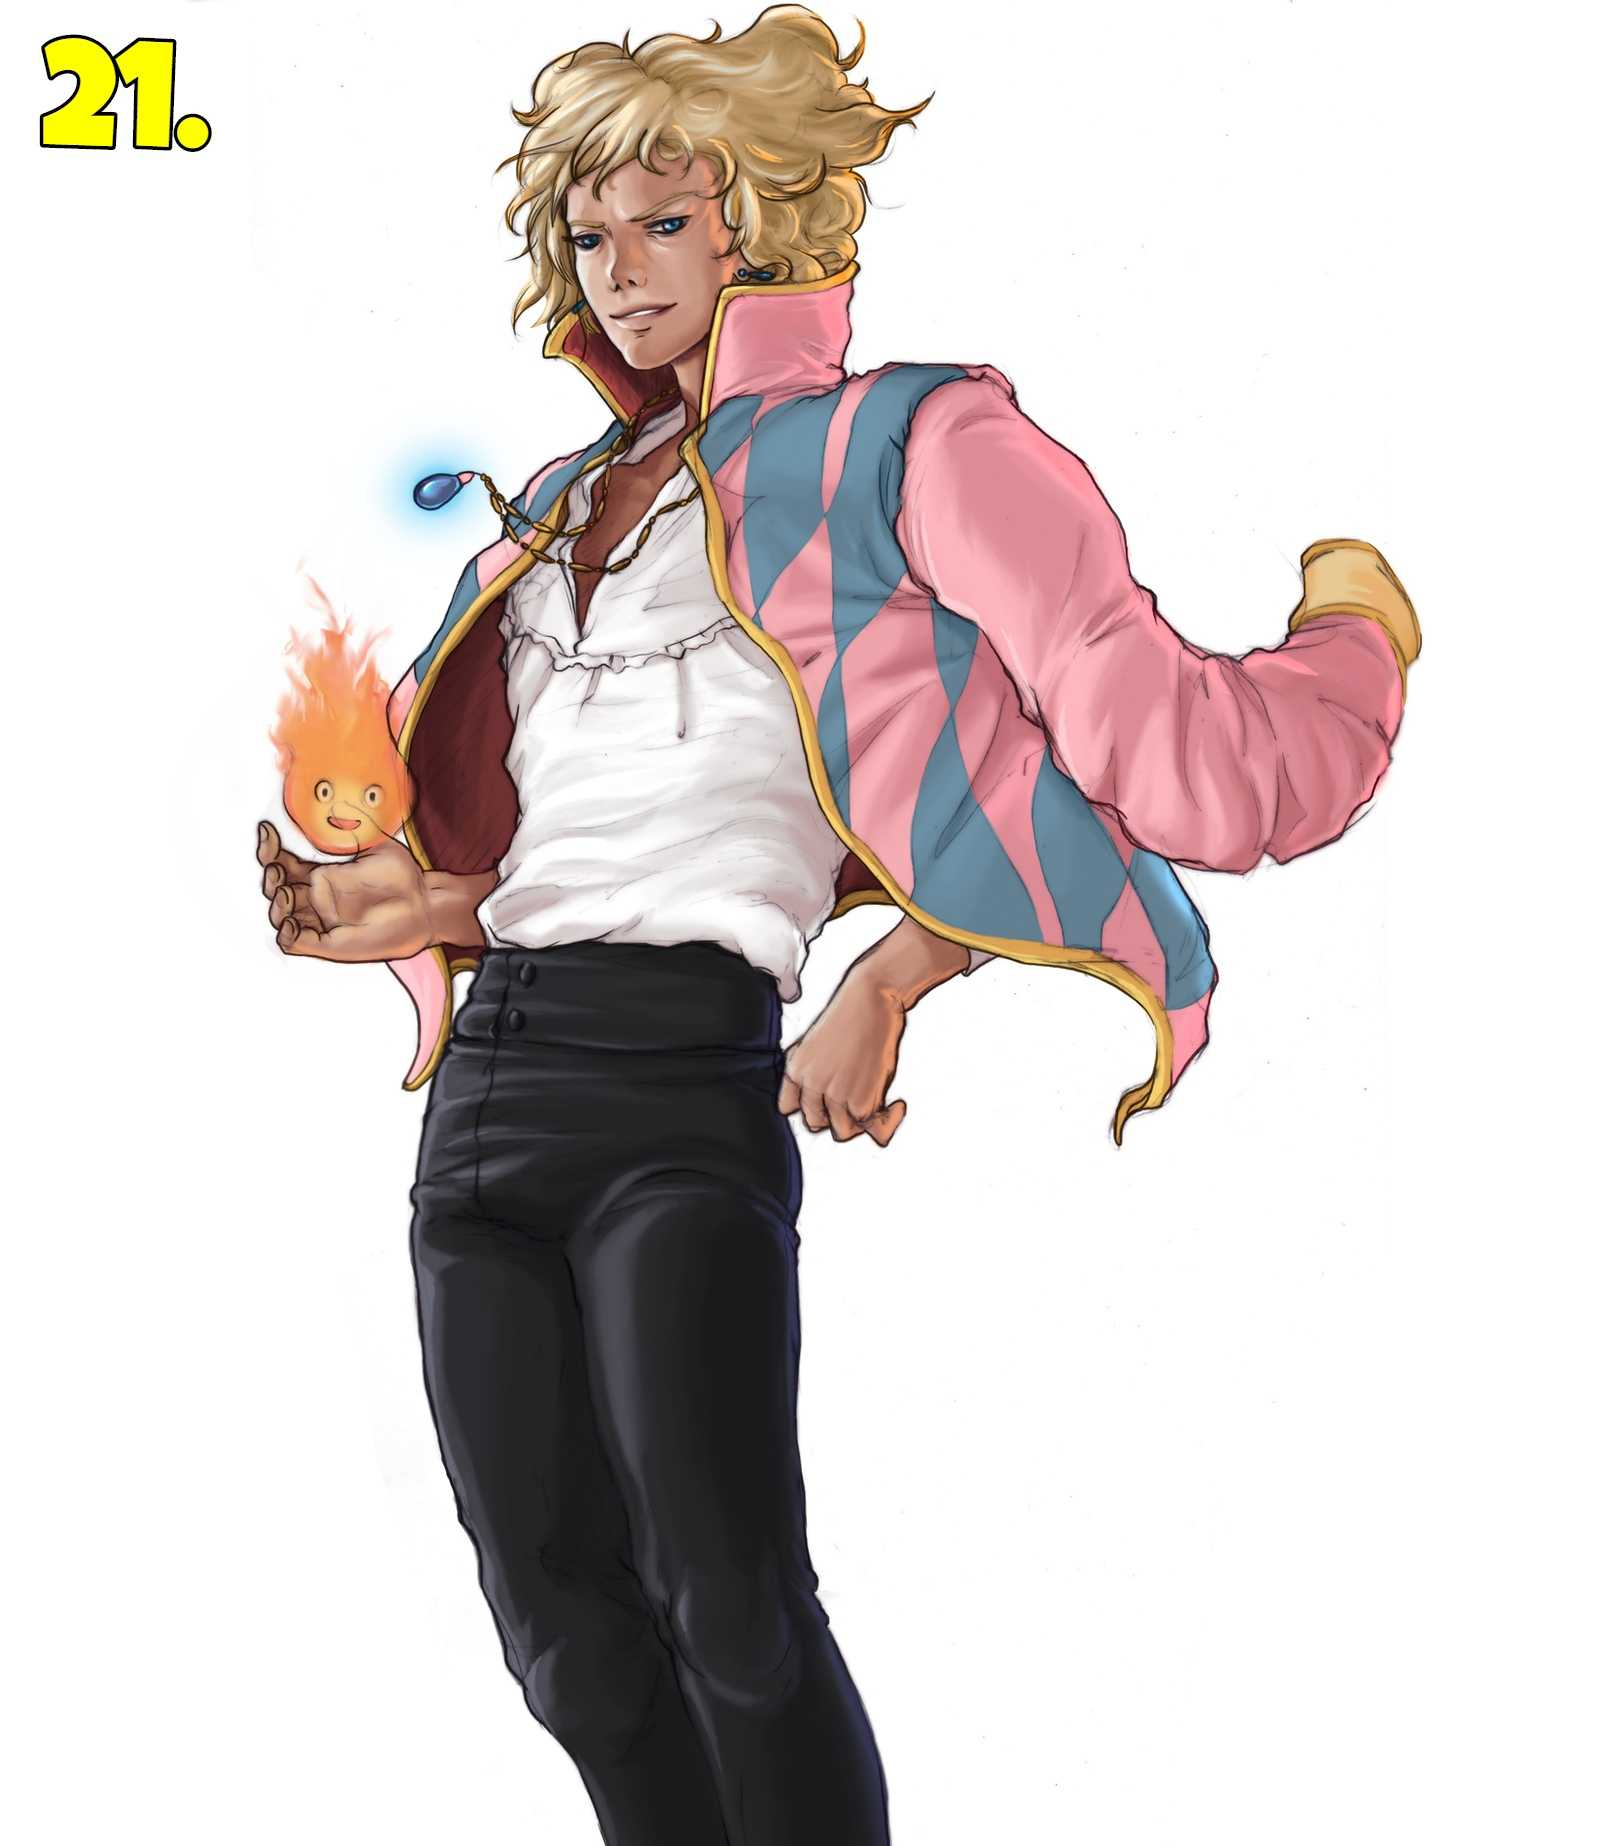 Wizard Howl (Howl's Moving Castle)